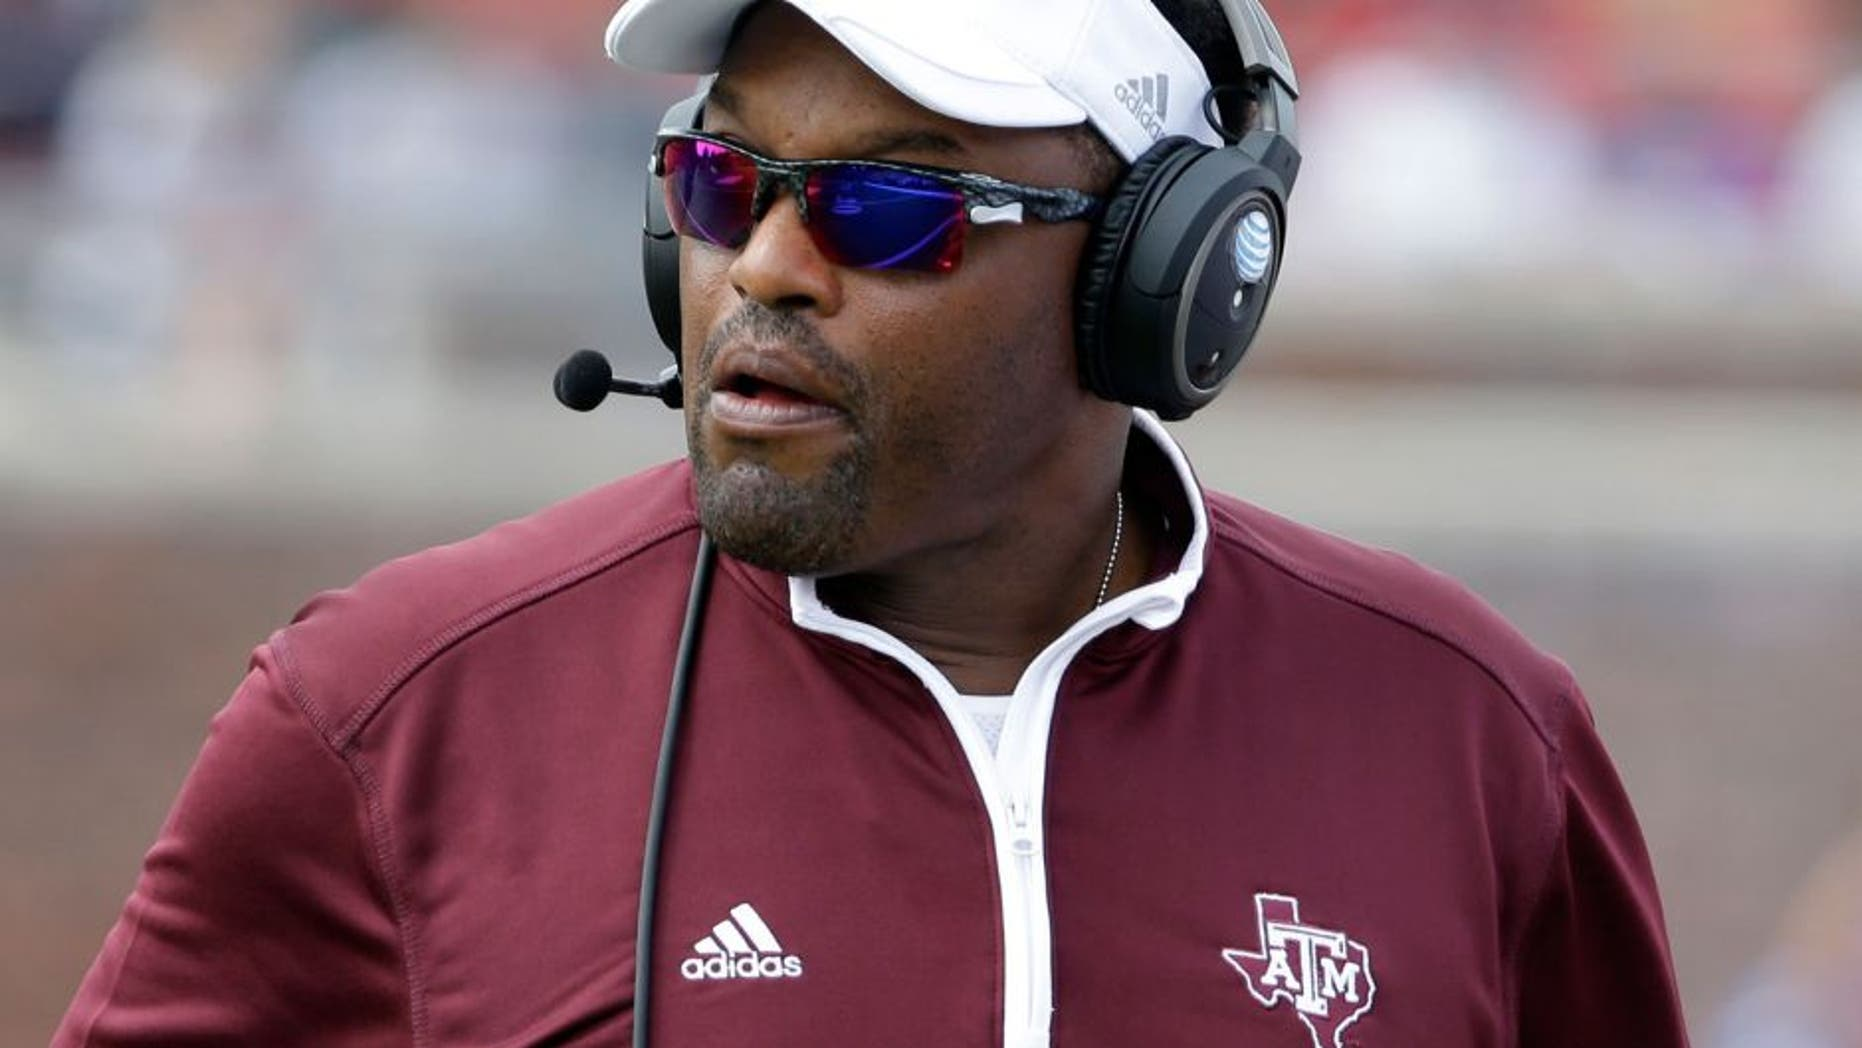 Texas A&M head coach Kevin Sumlin watches a play in the first half of an NCAA college football game against SMU, Saturday, Sept. 20, 2014, in Dallas. (AP Photo/Tony Gutierrez)